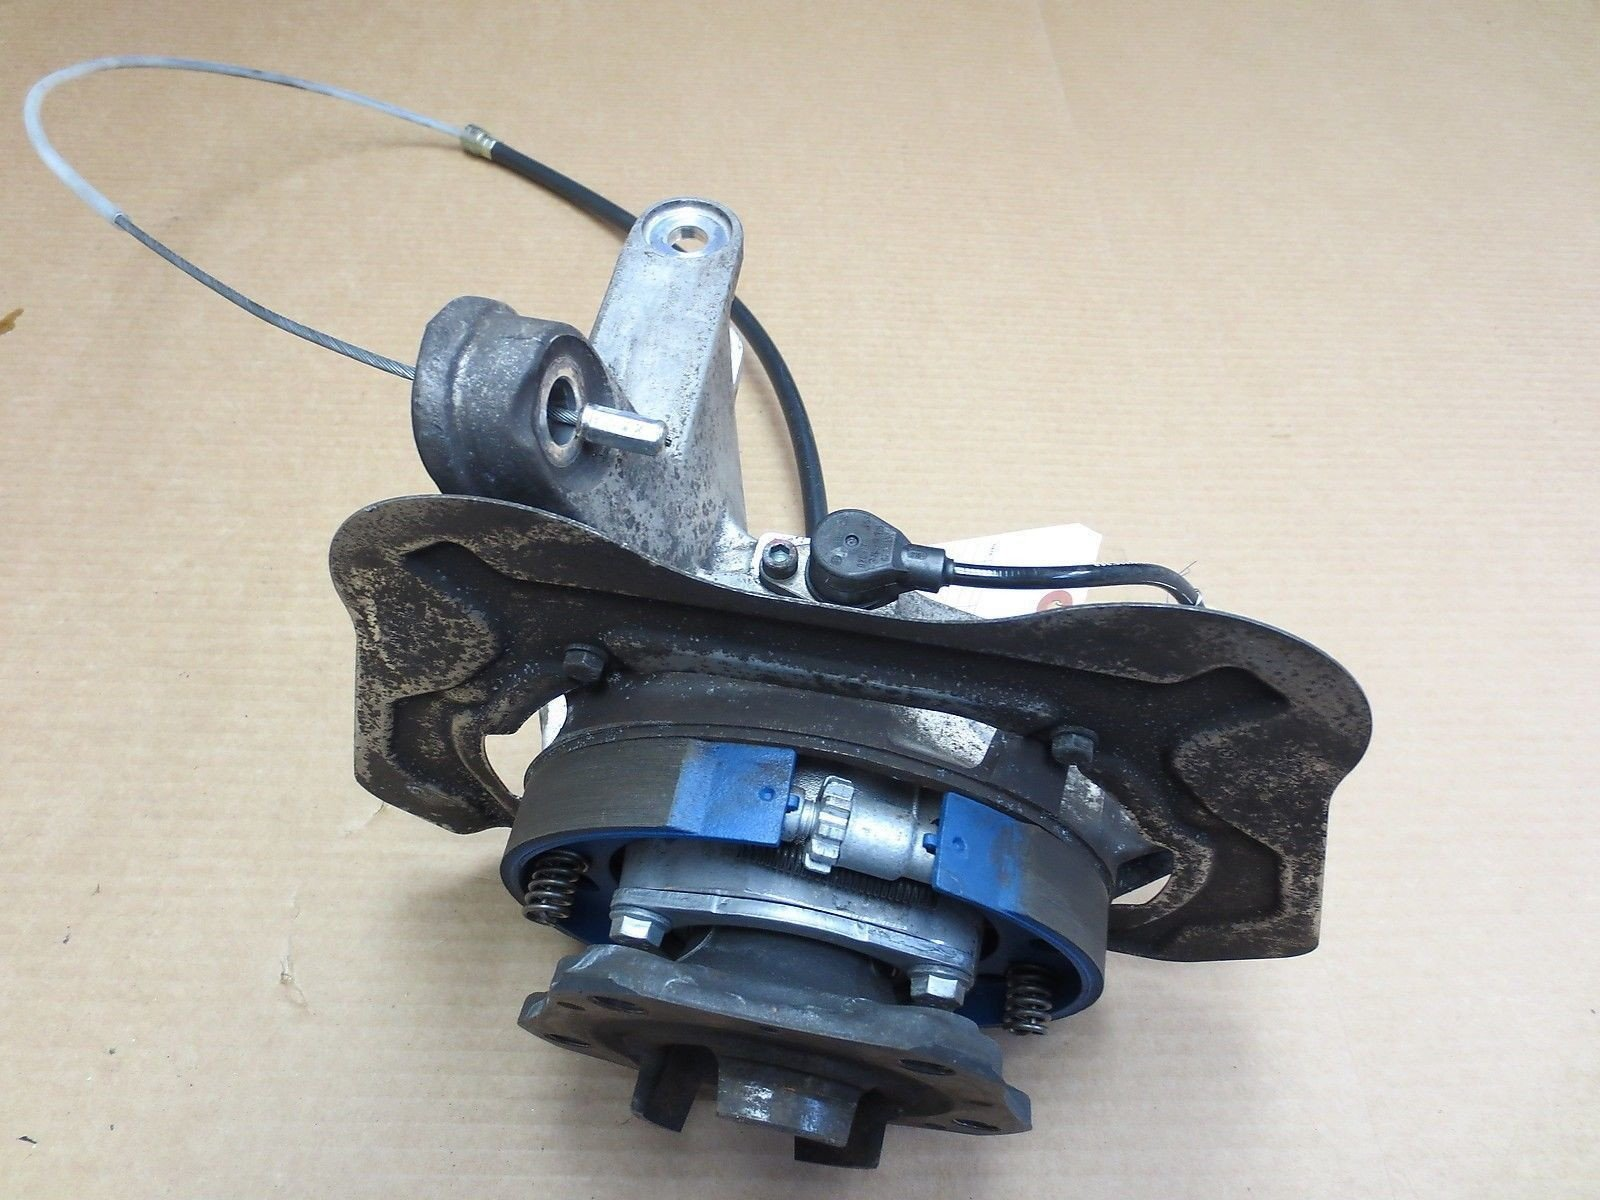 04 4S C4 AWD Porsche 911 Carrera 996 Right REAR HUB STEERING KNUCKLE ABS 59,104